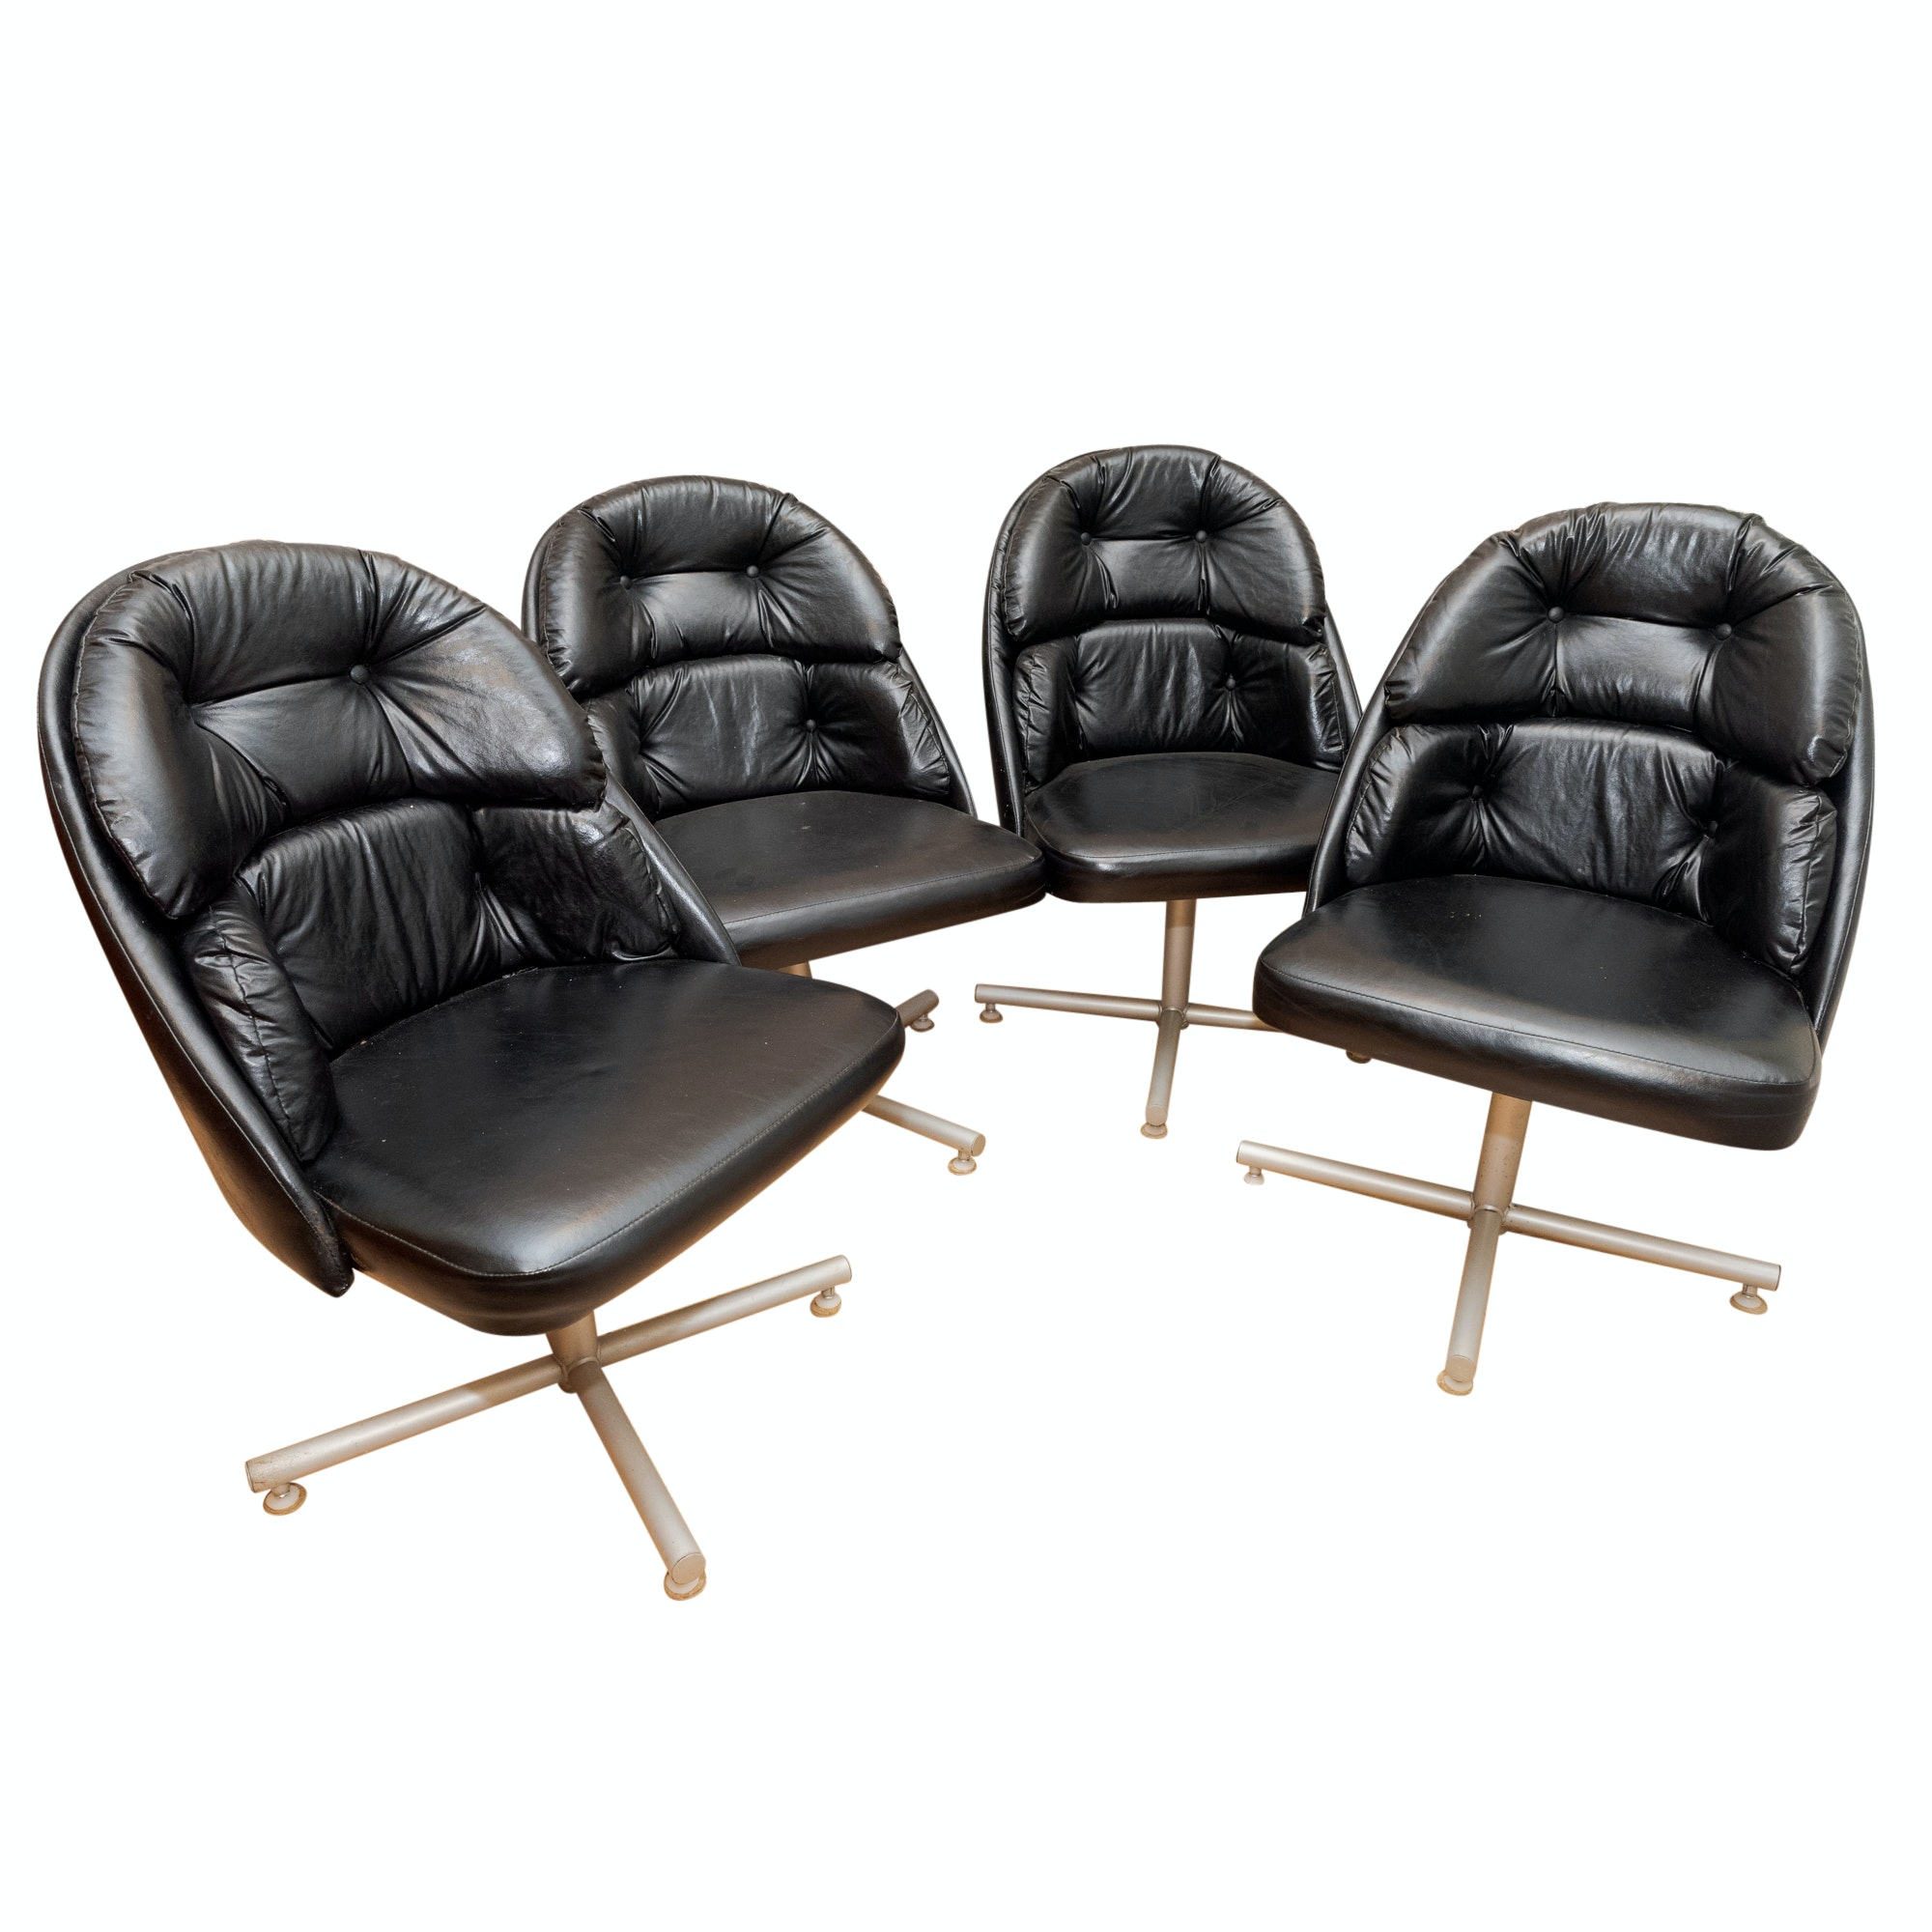 Mid Century Modern Faux Leather Upholstered Dining Chairs, Mid-20th Century